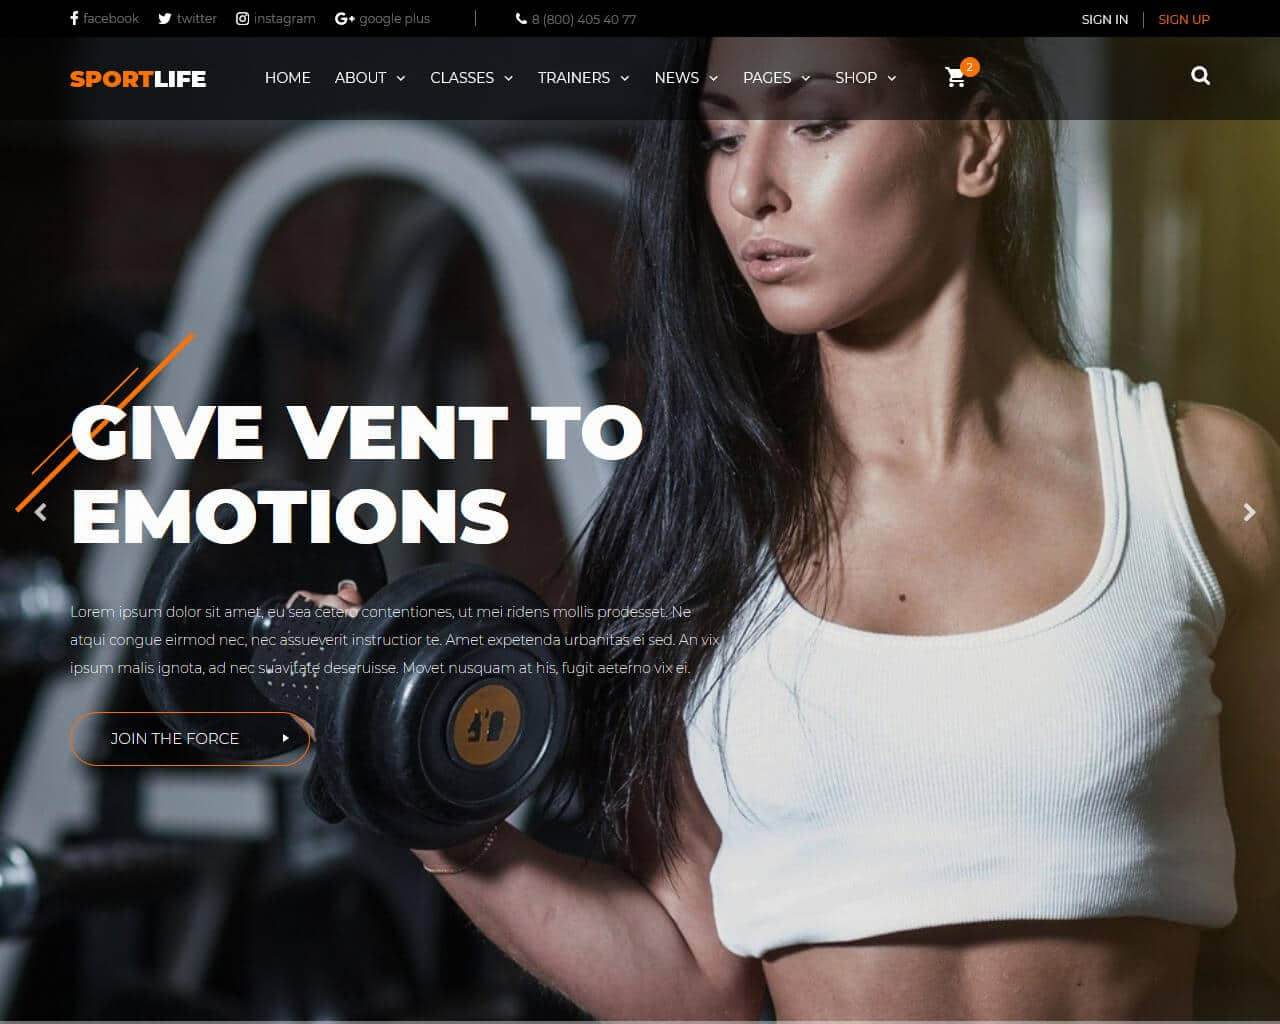 SportLife Website Template